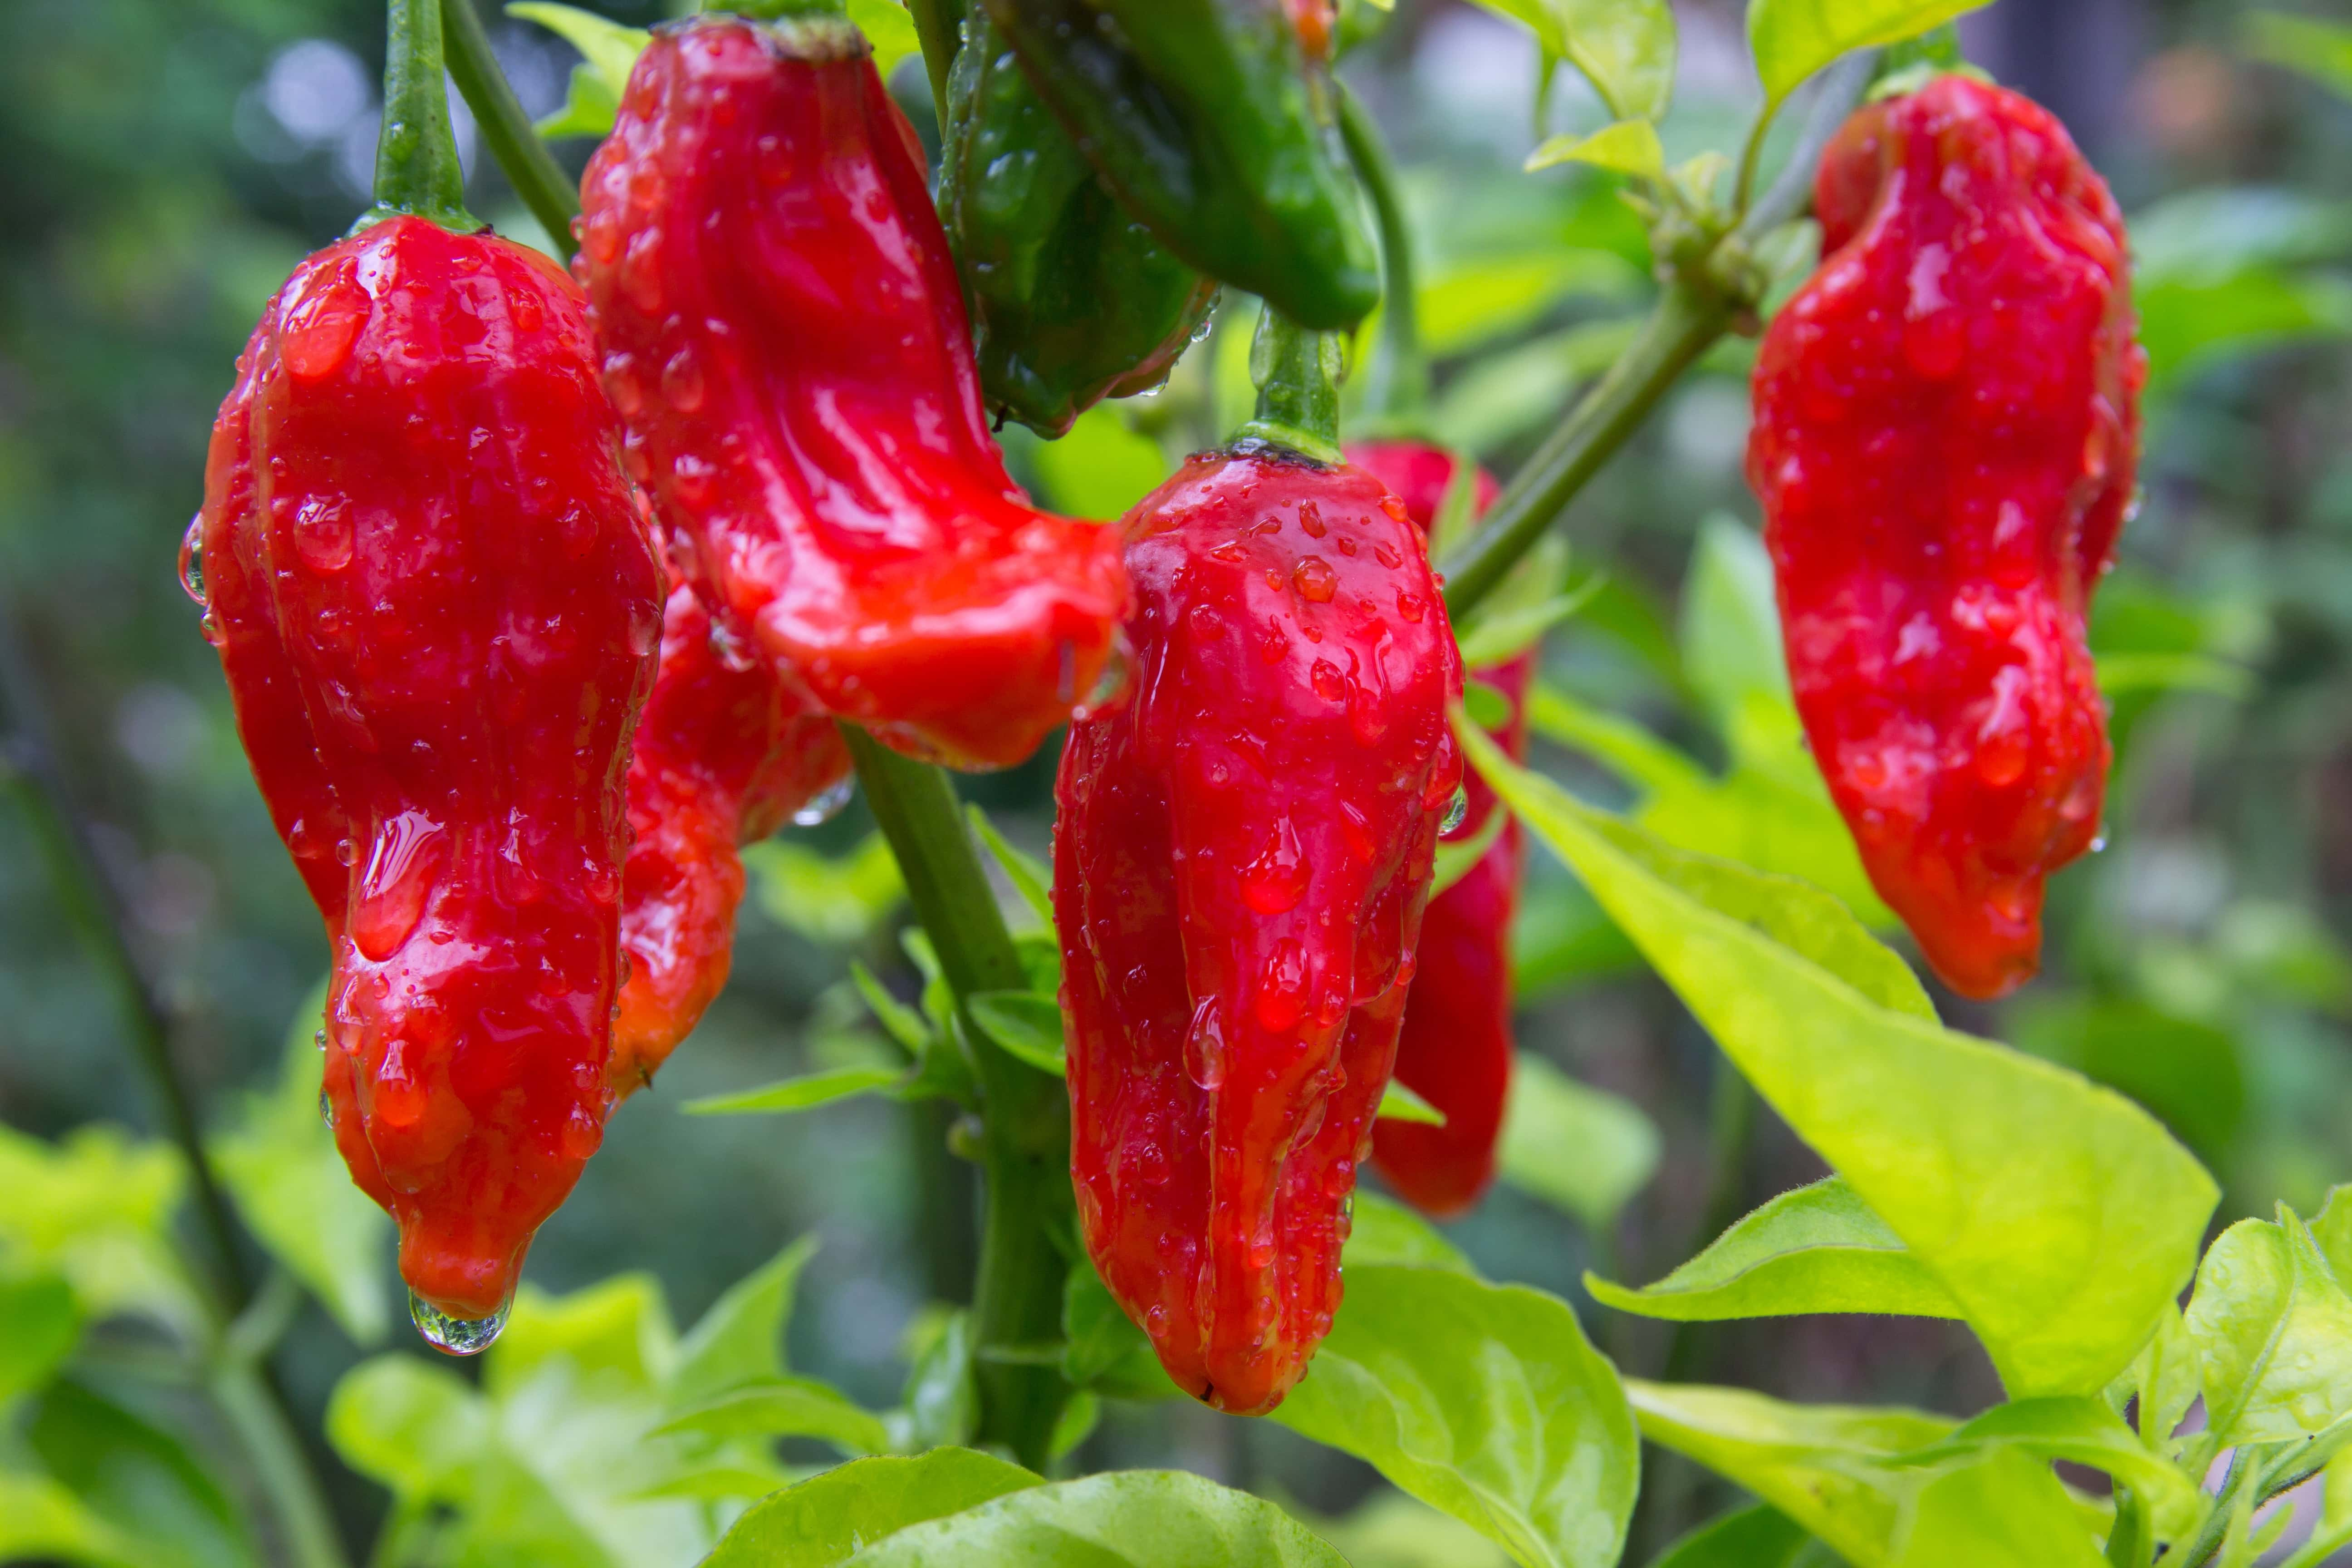 ghost peppers, bhut jolokias